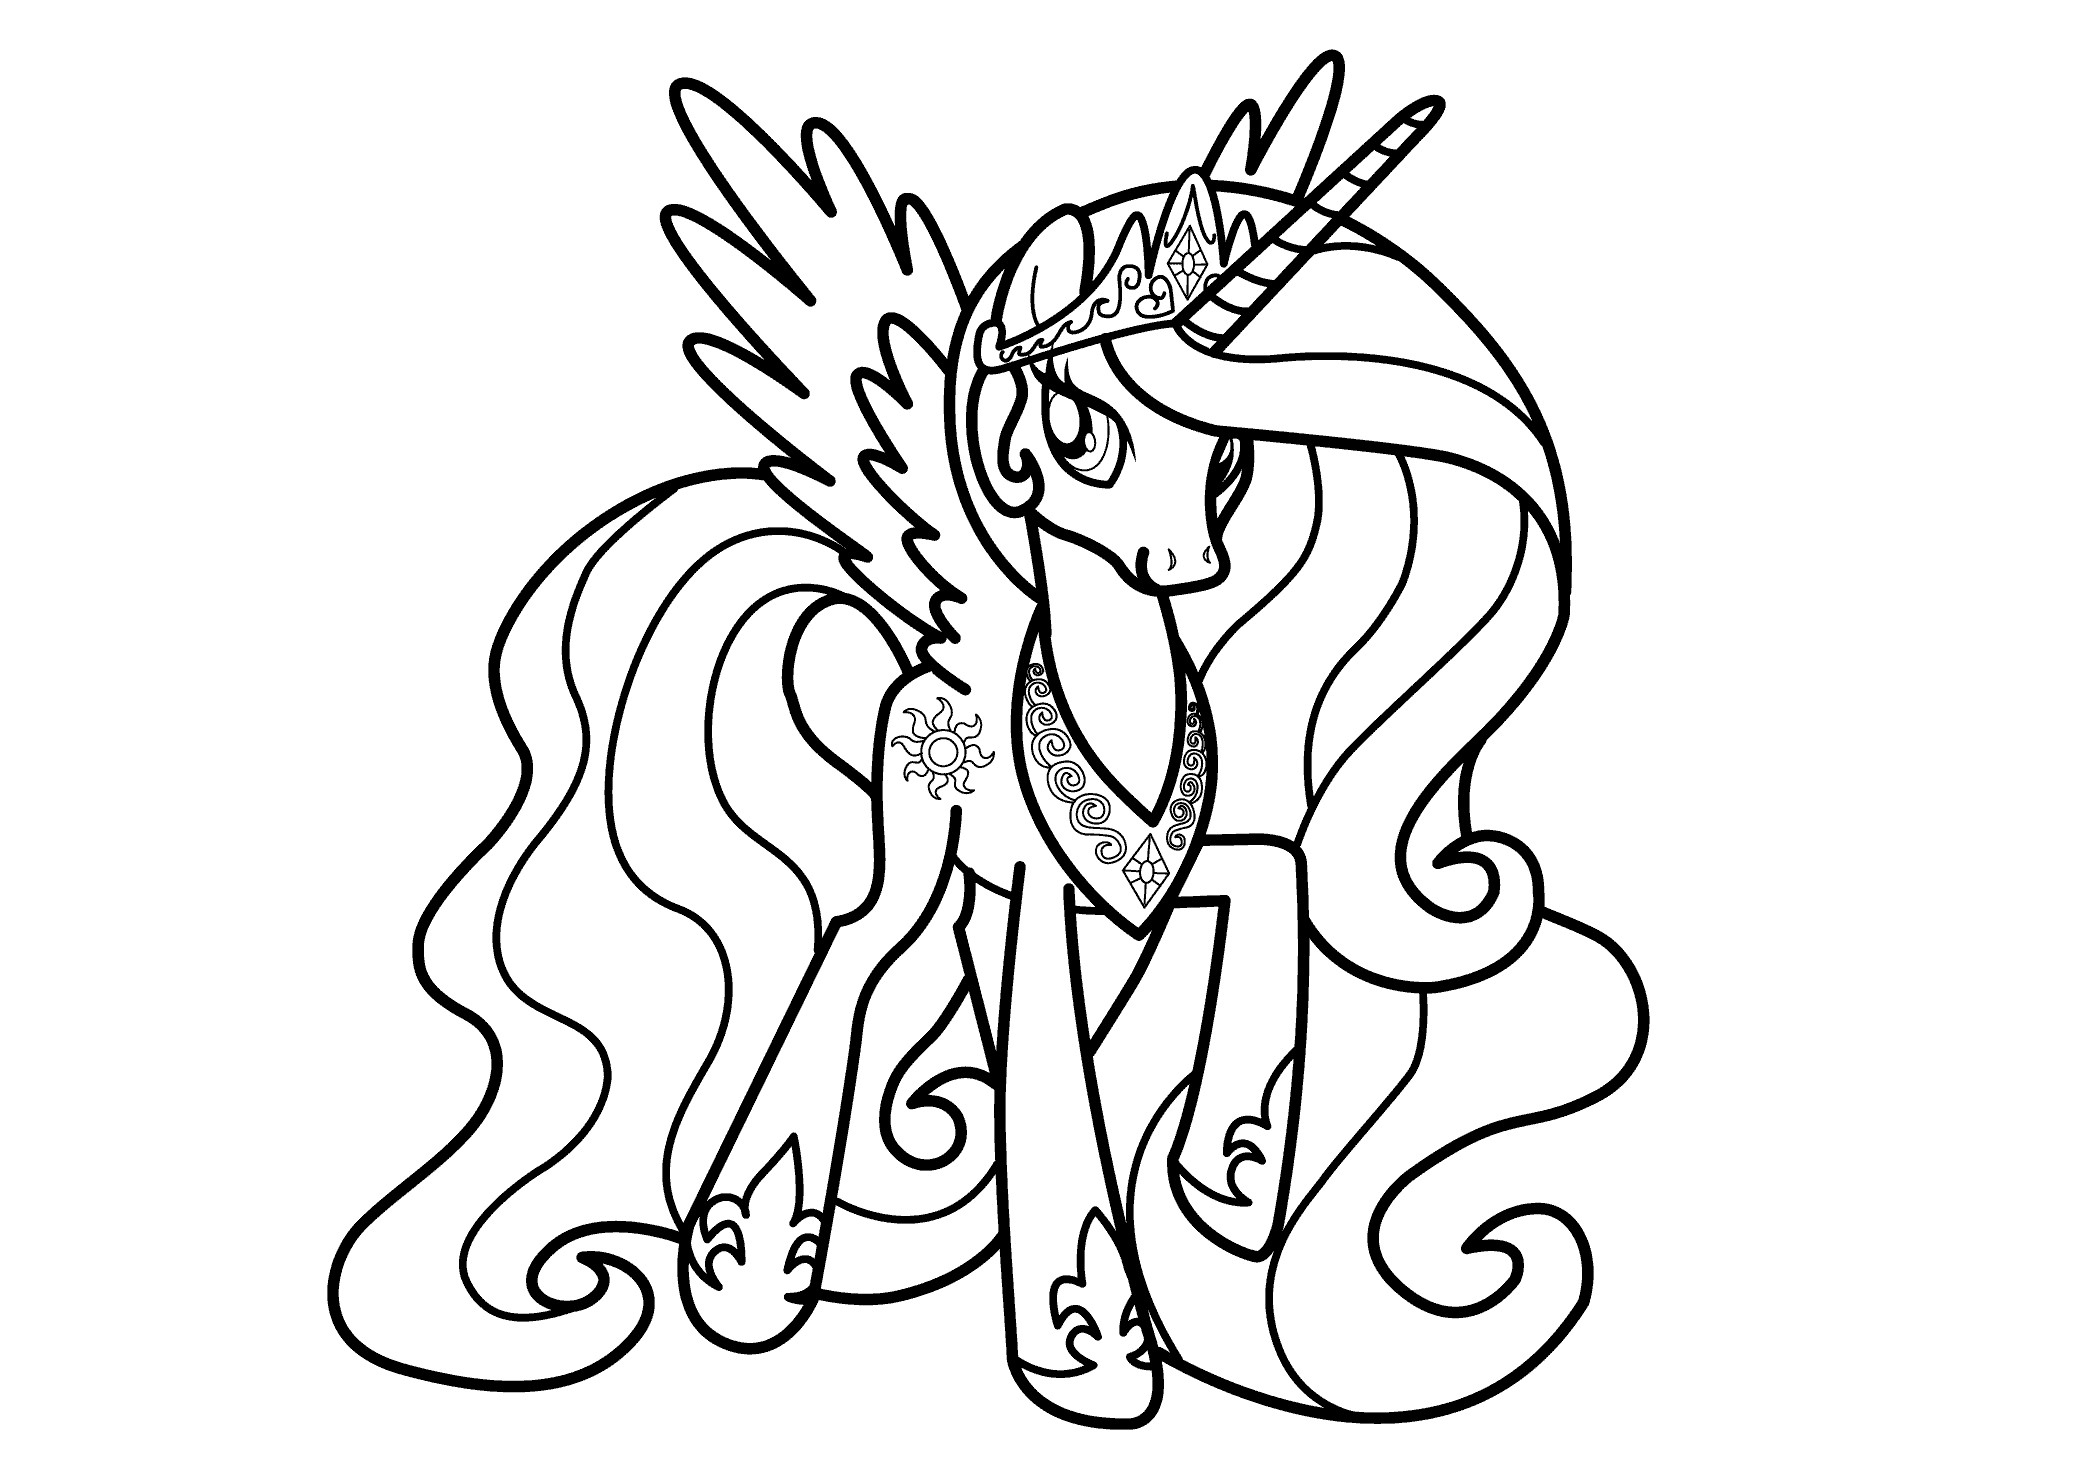 2079x1483 Best Of My Little Pony Coloring Pages Princess Luna Filly Design